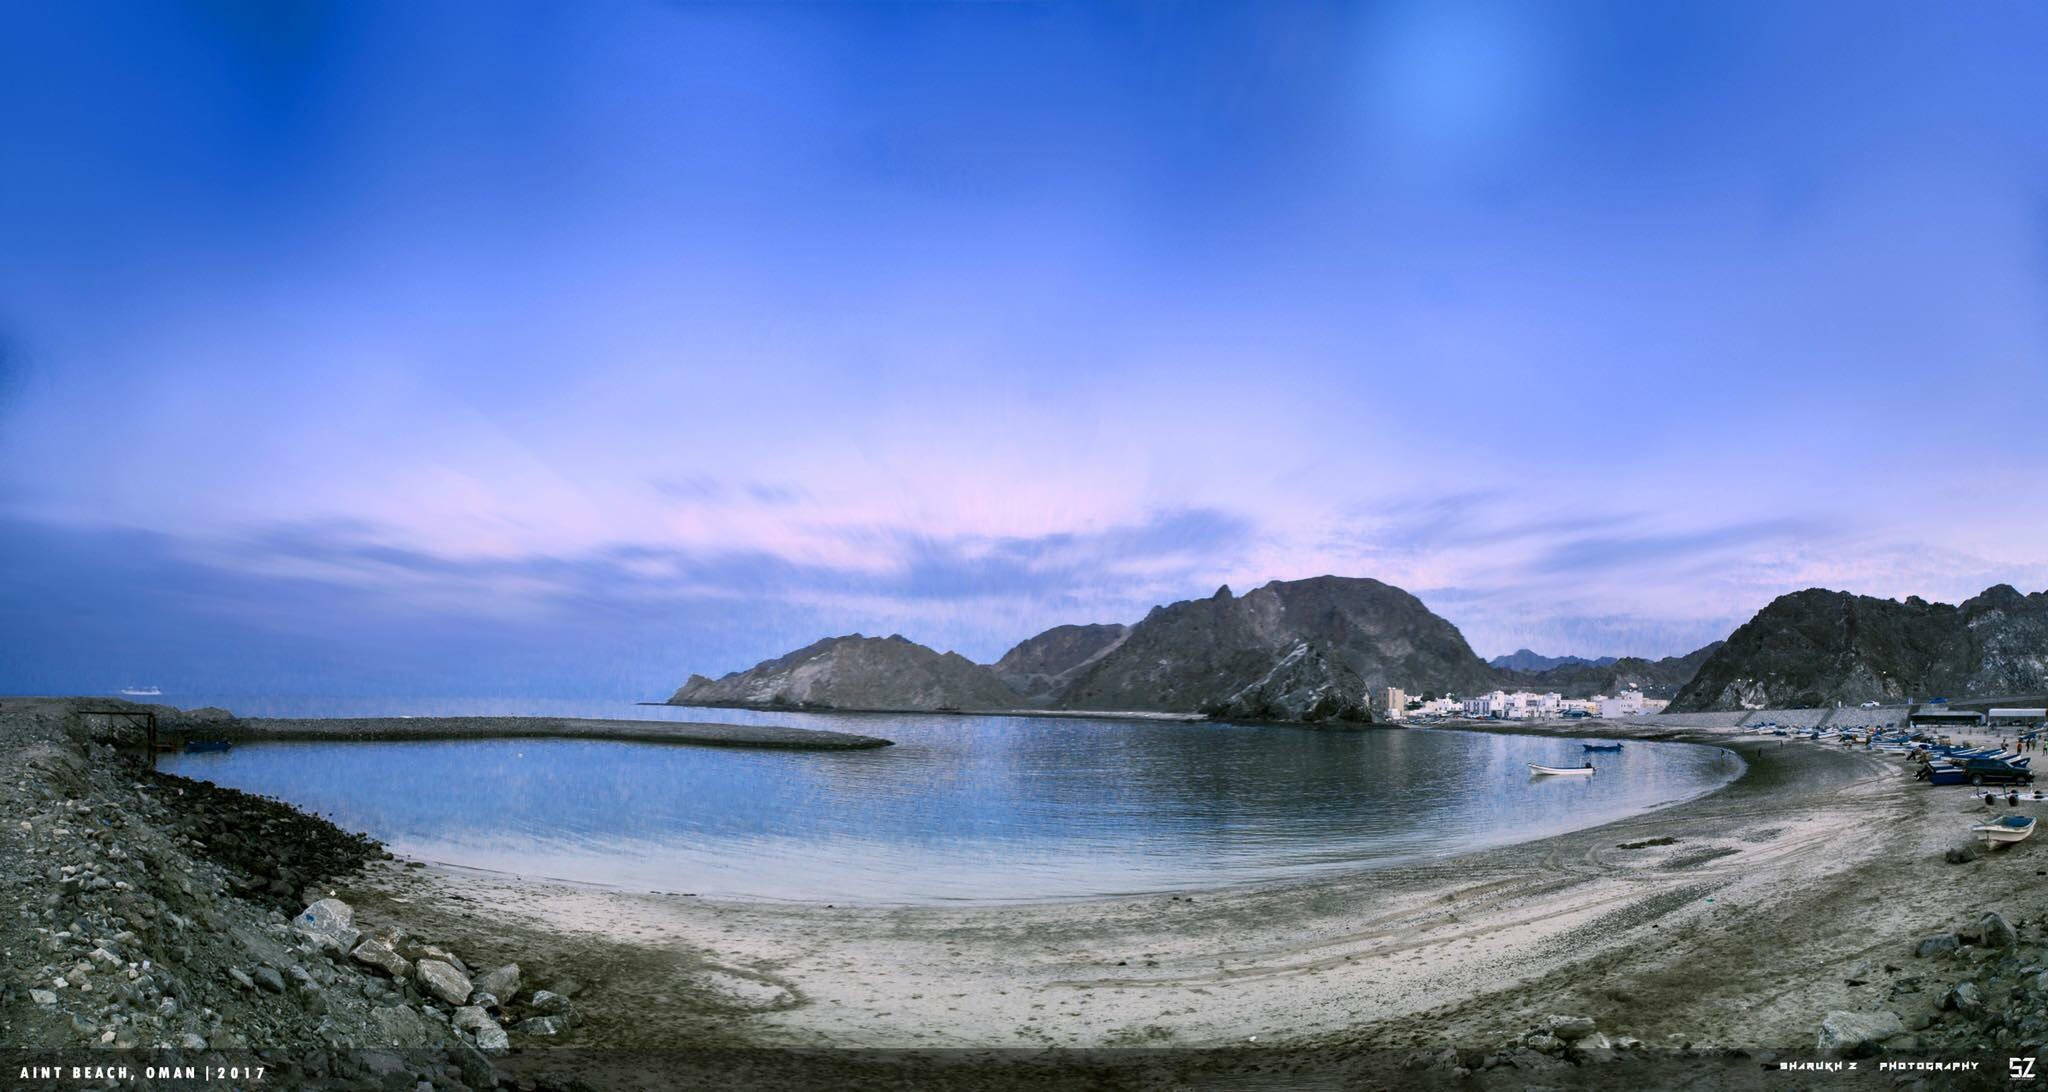 Ithraa event to focus on hyperlocal tourism in Oman